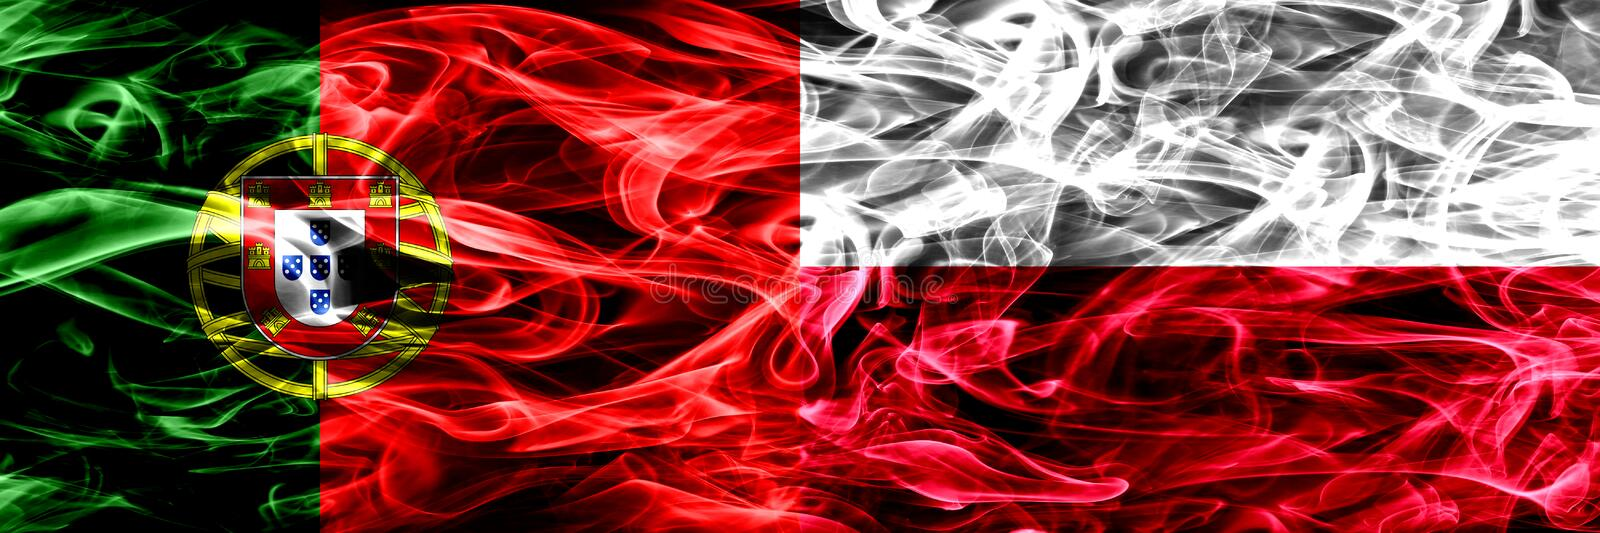 Portugal vs Poland, Polish smoke flags placed side by side. Thick colored silky smoke flags of Portuguese and Poland, Polish royalty free illustration